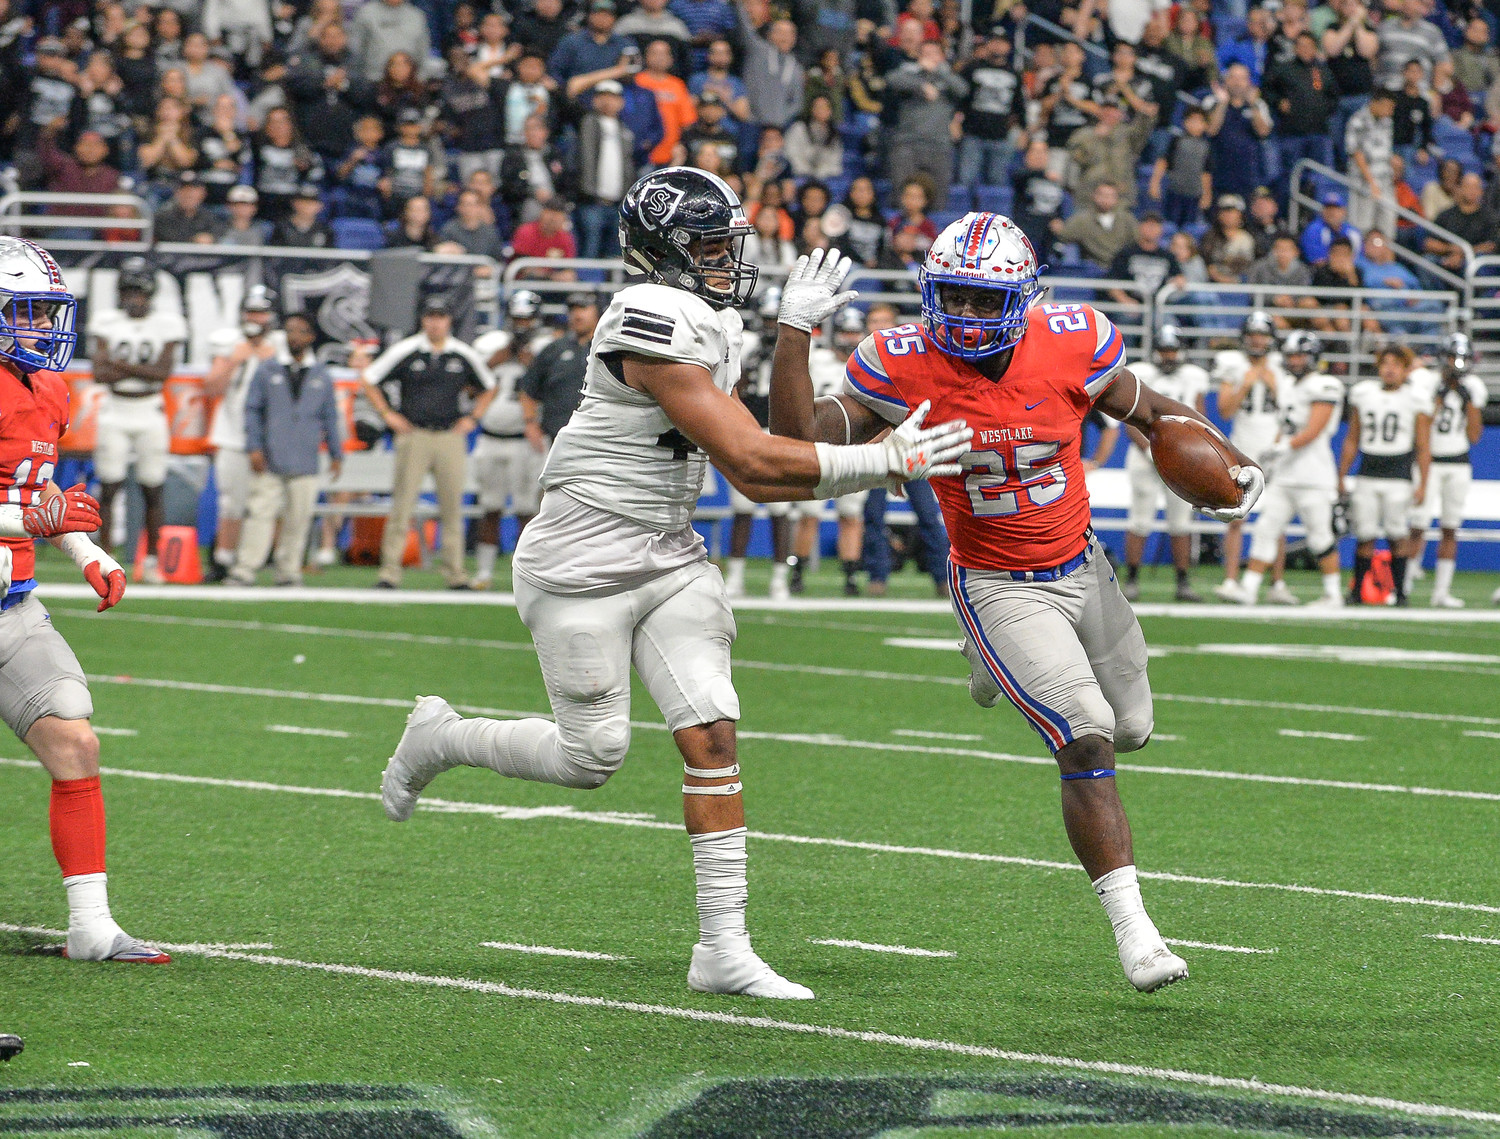 Nakia Watson ran for an for 183 yards and three touchdowns, helping Westlake beat Cibolo Steele 28-14 Saturday night.